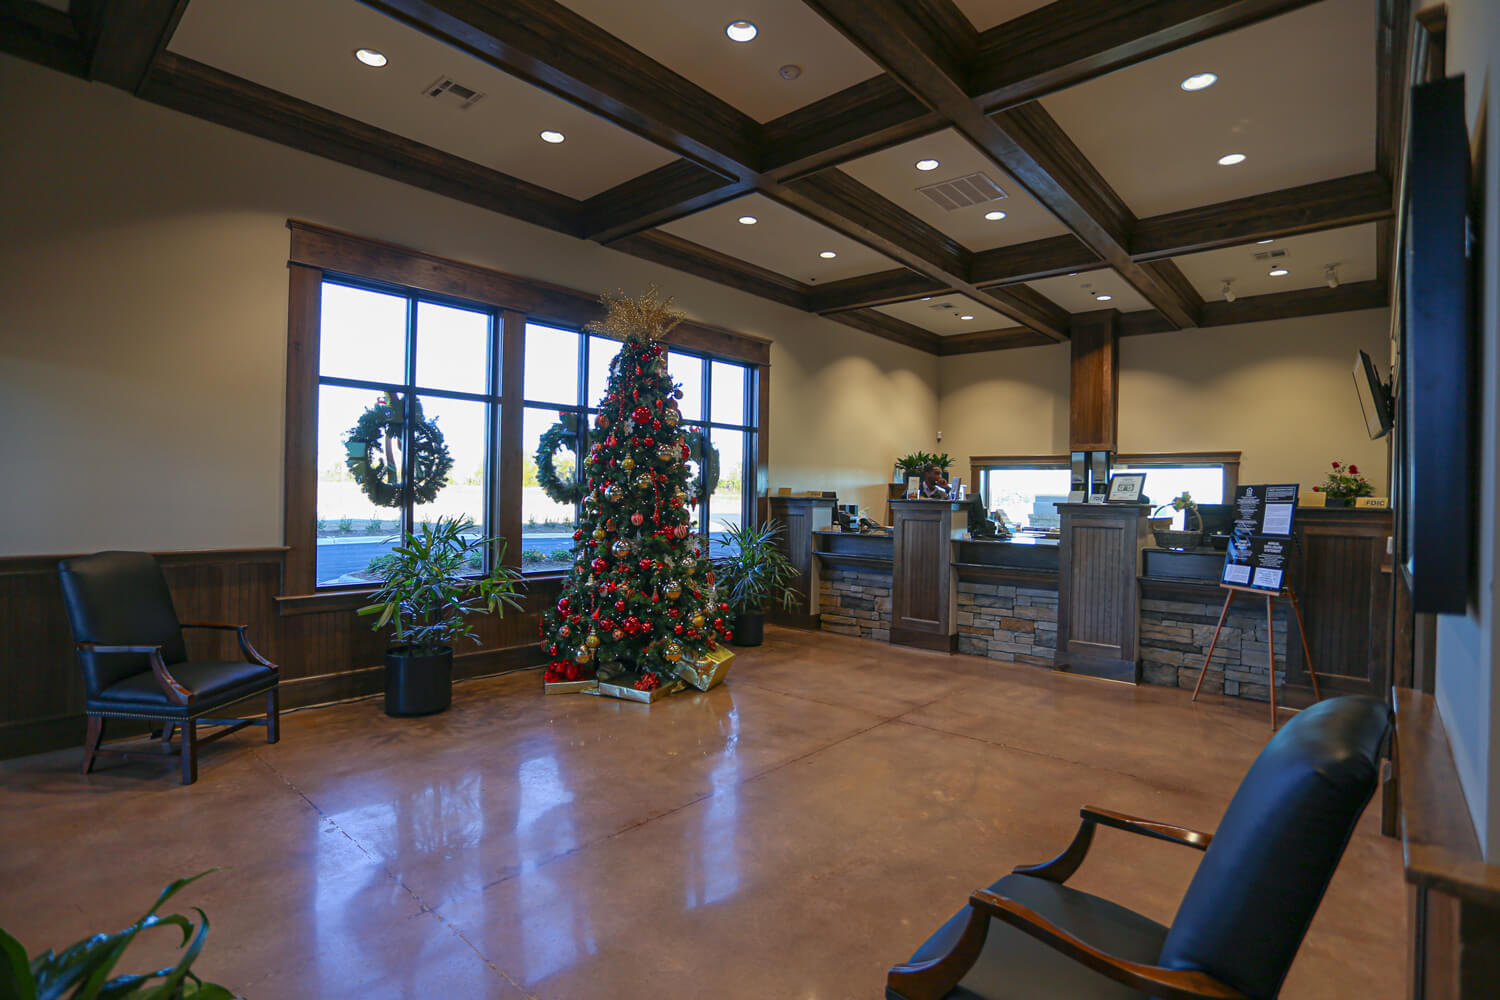 First Cahawba Bank - Teller Lobby - Designed by Foshee Architecture